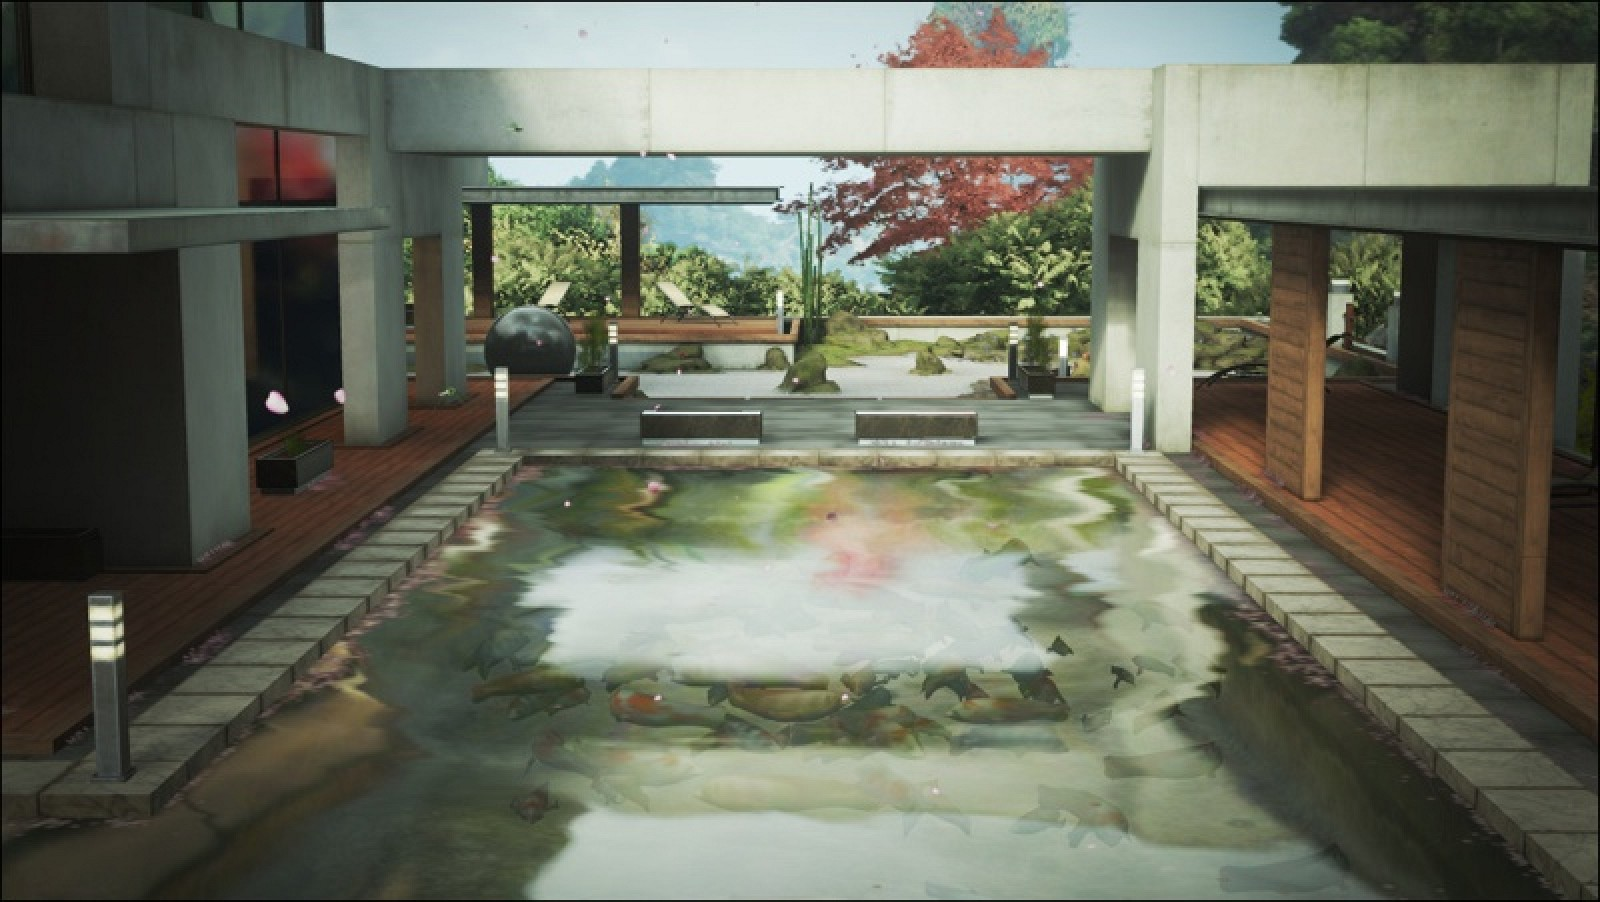 U0027Epic Zen Gardenu0027 Metal Demo Shown Off At WWDC Now Available For Download    MacRumors